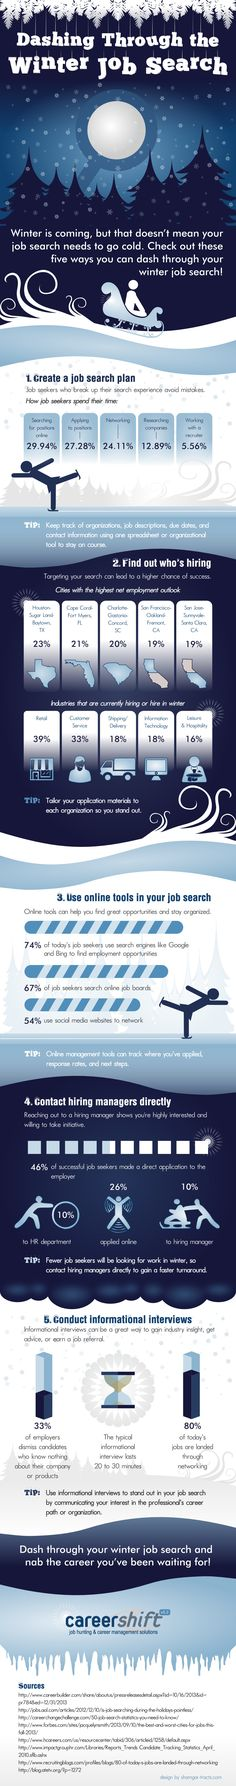 Dashing Through The Winter Job Search [INFOGRAPHIC] - CareerEnlightenment.com